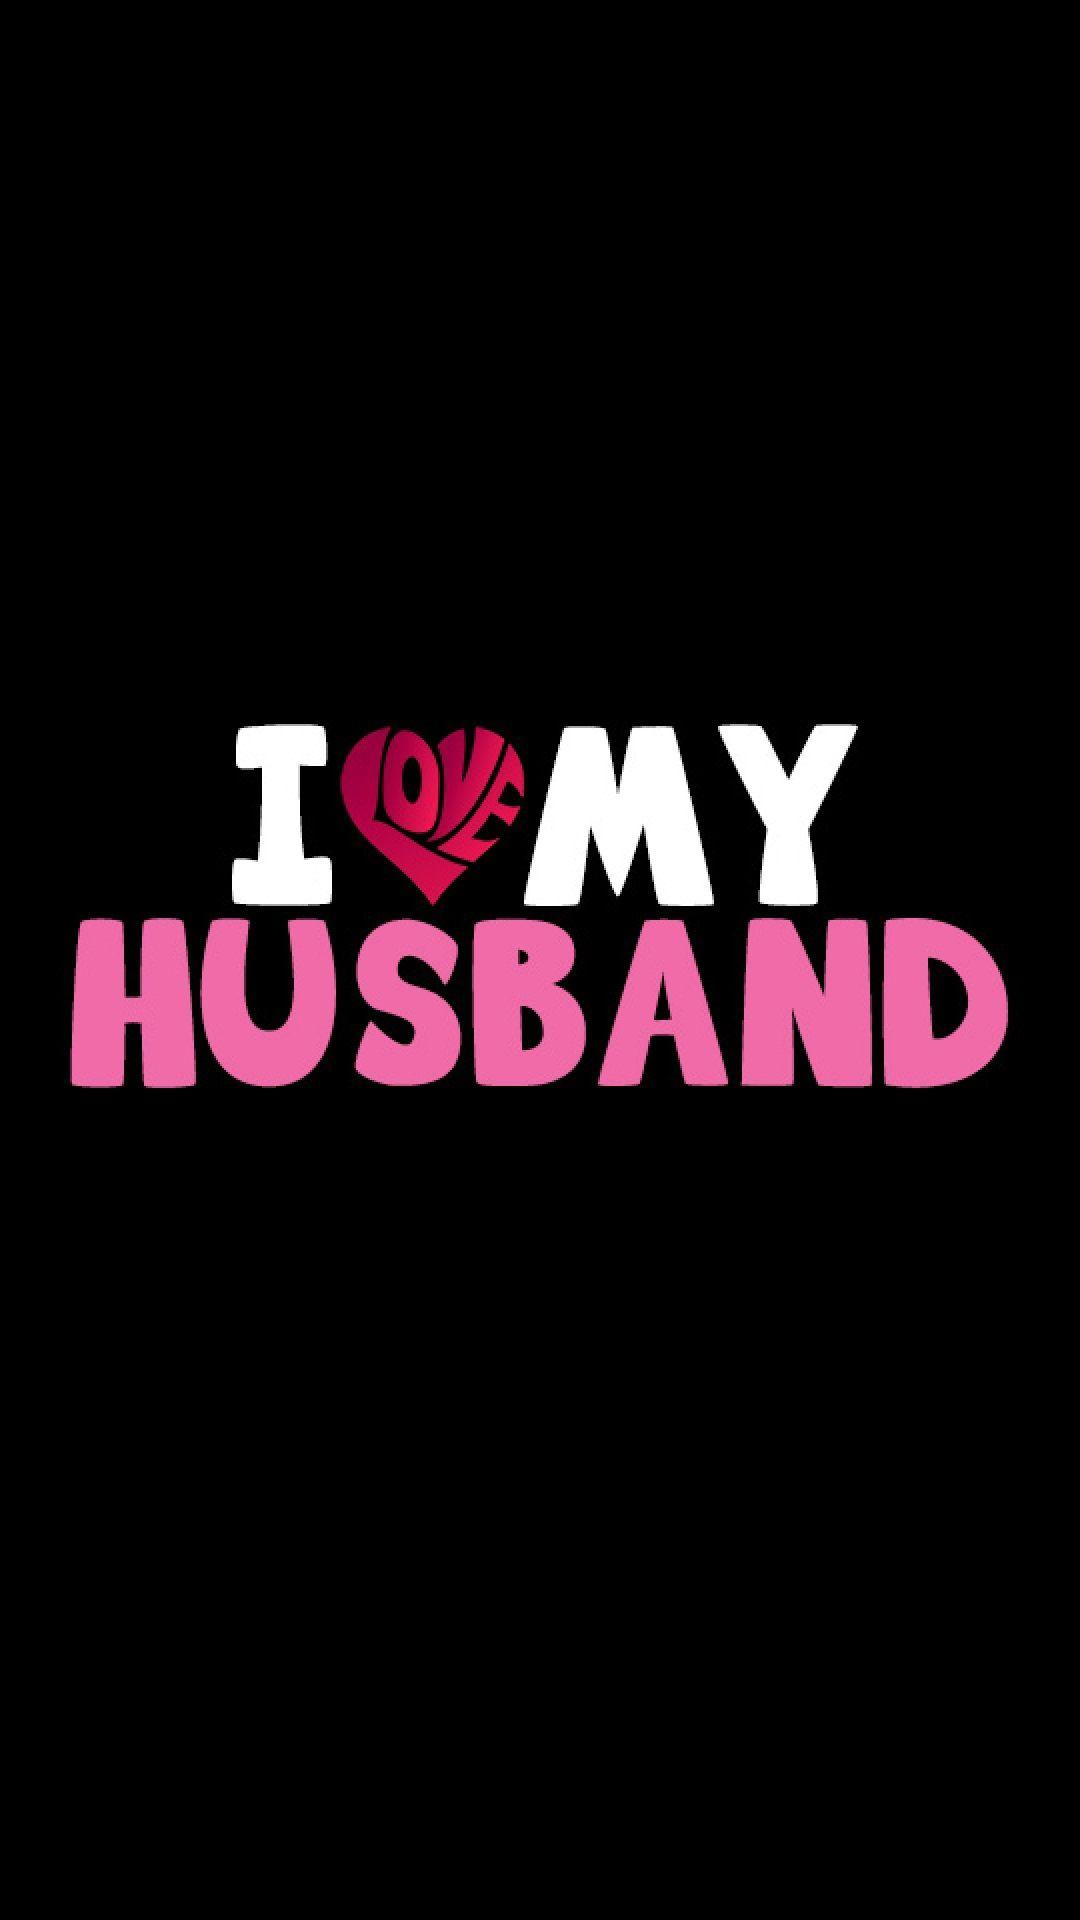 Wallpaper Of Love For Husband : Download Love Wallpaper For Husband Gallery